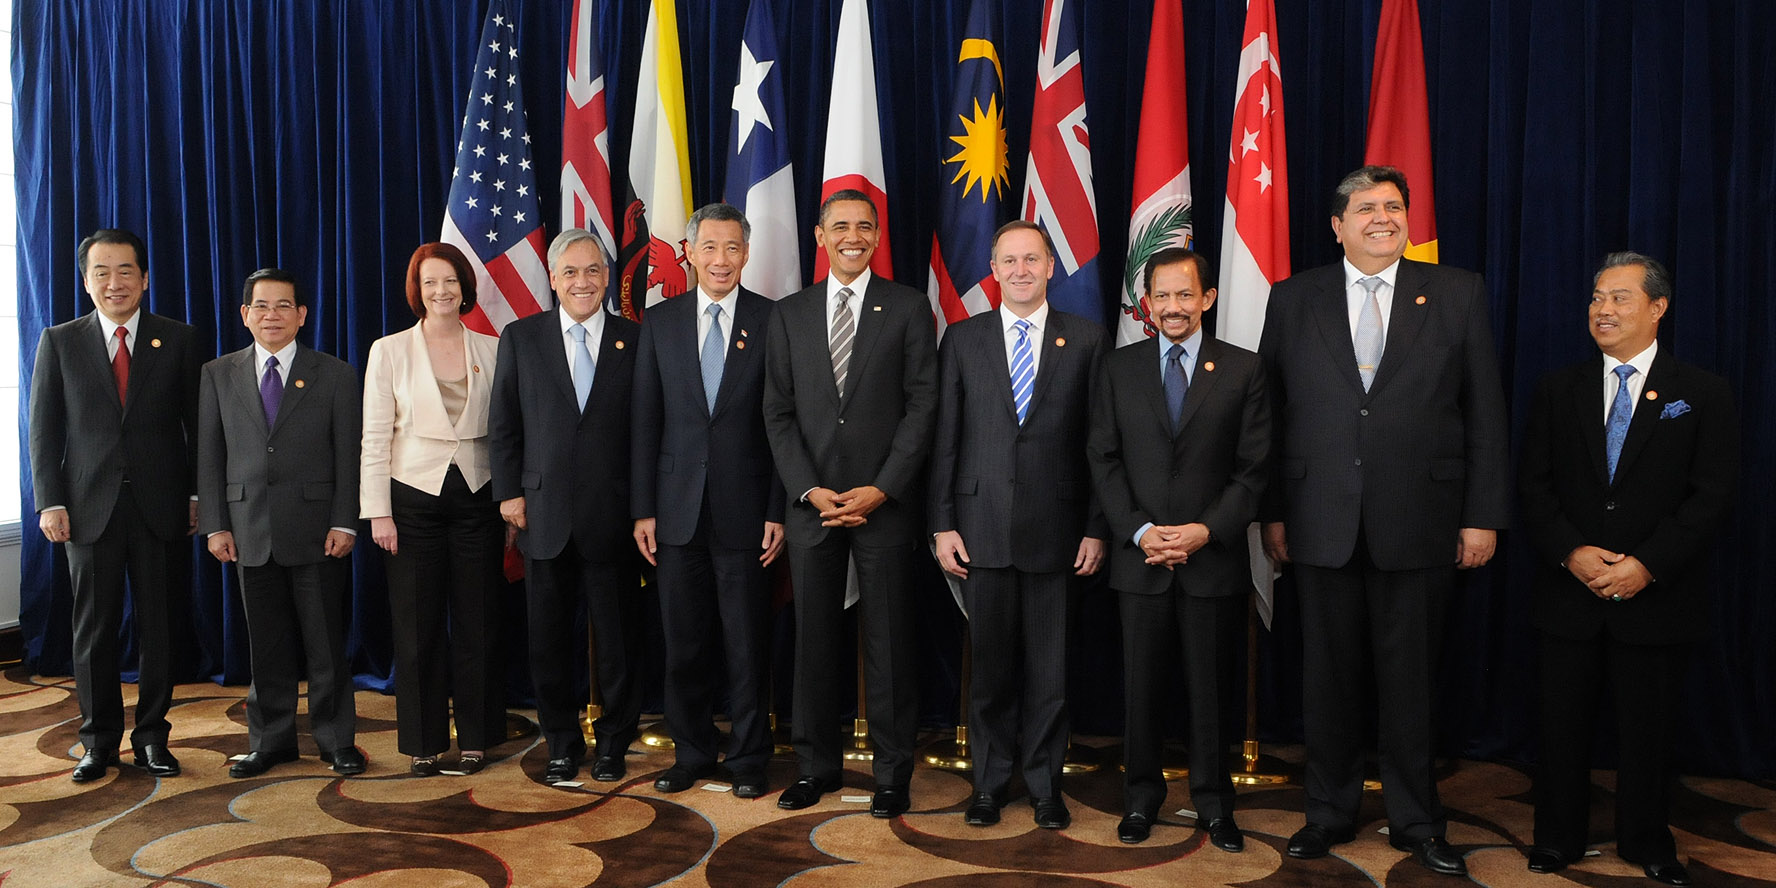 A summit with leaders of the (then) negotiating states of the Trans-Pacific Strategic Economic Partnership Agreement (TPP).